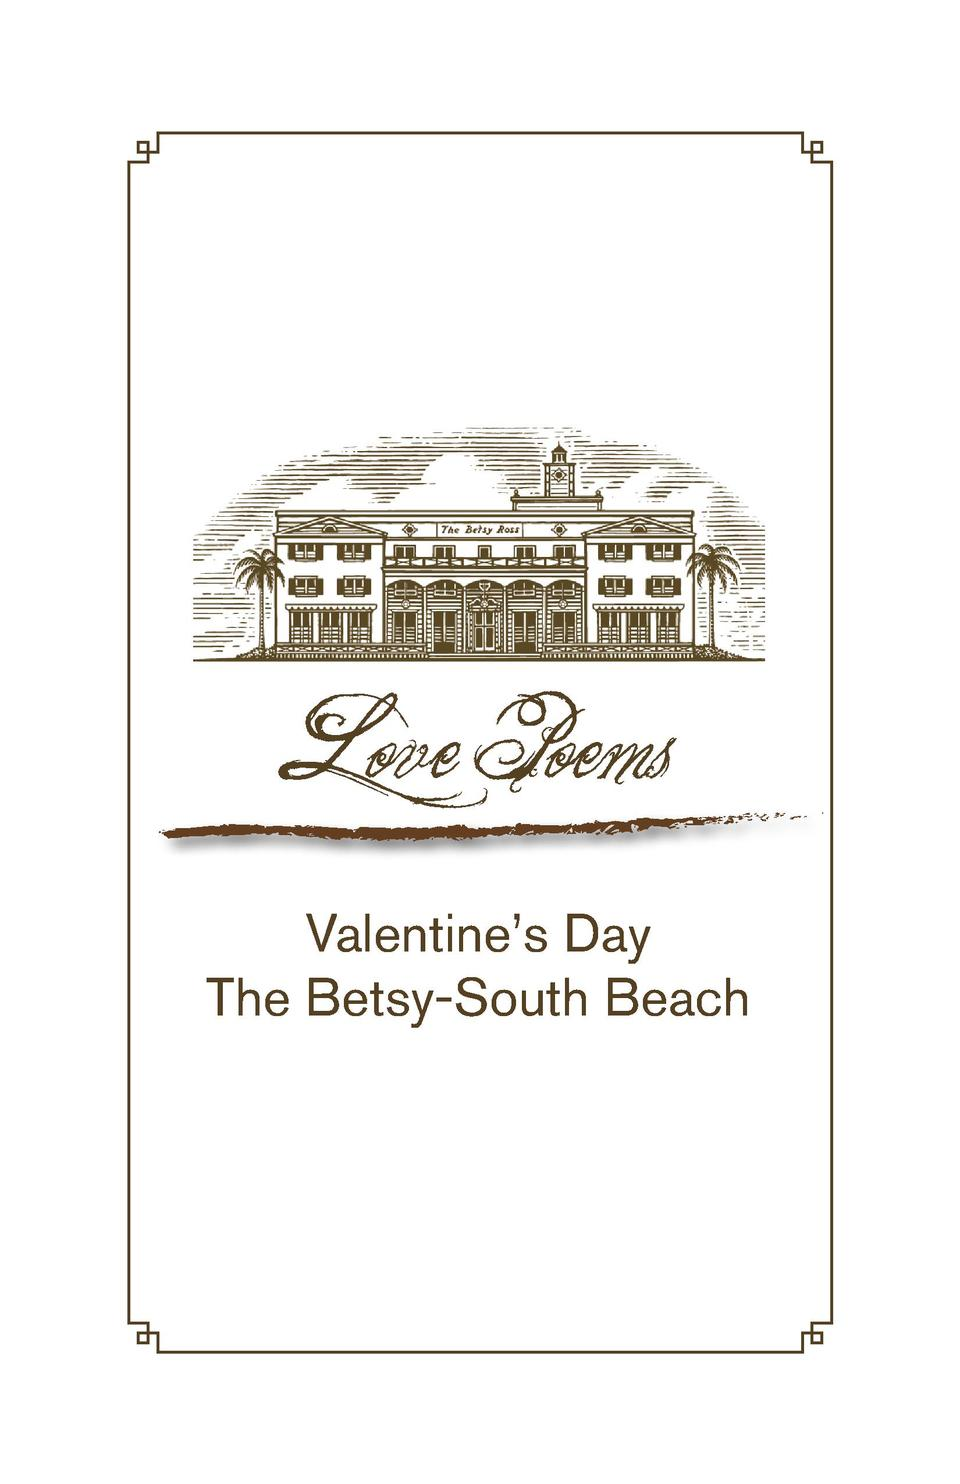 Love Poems Valentine   s Day The Betsy-South Beach  love poems 2015.indd 1  2 2 15 3 20 PM